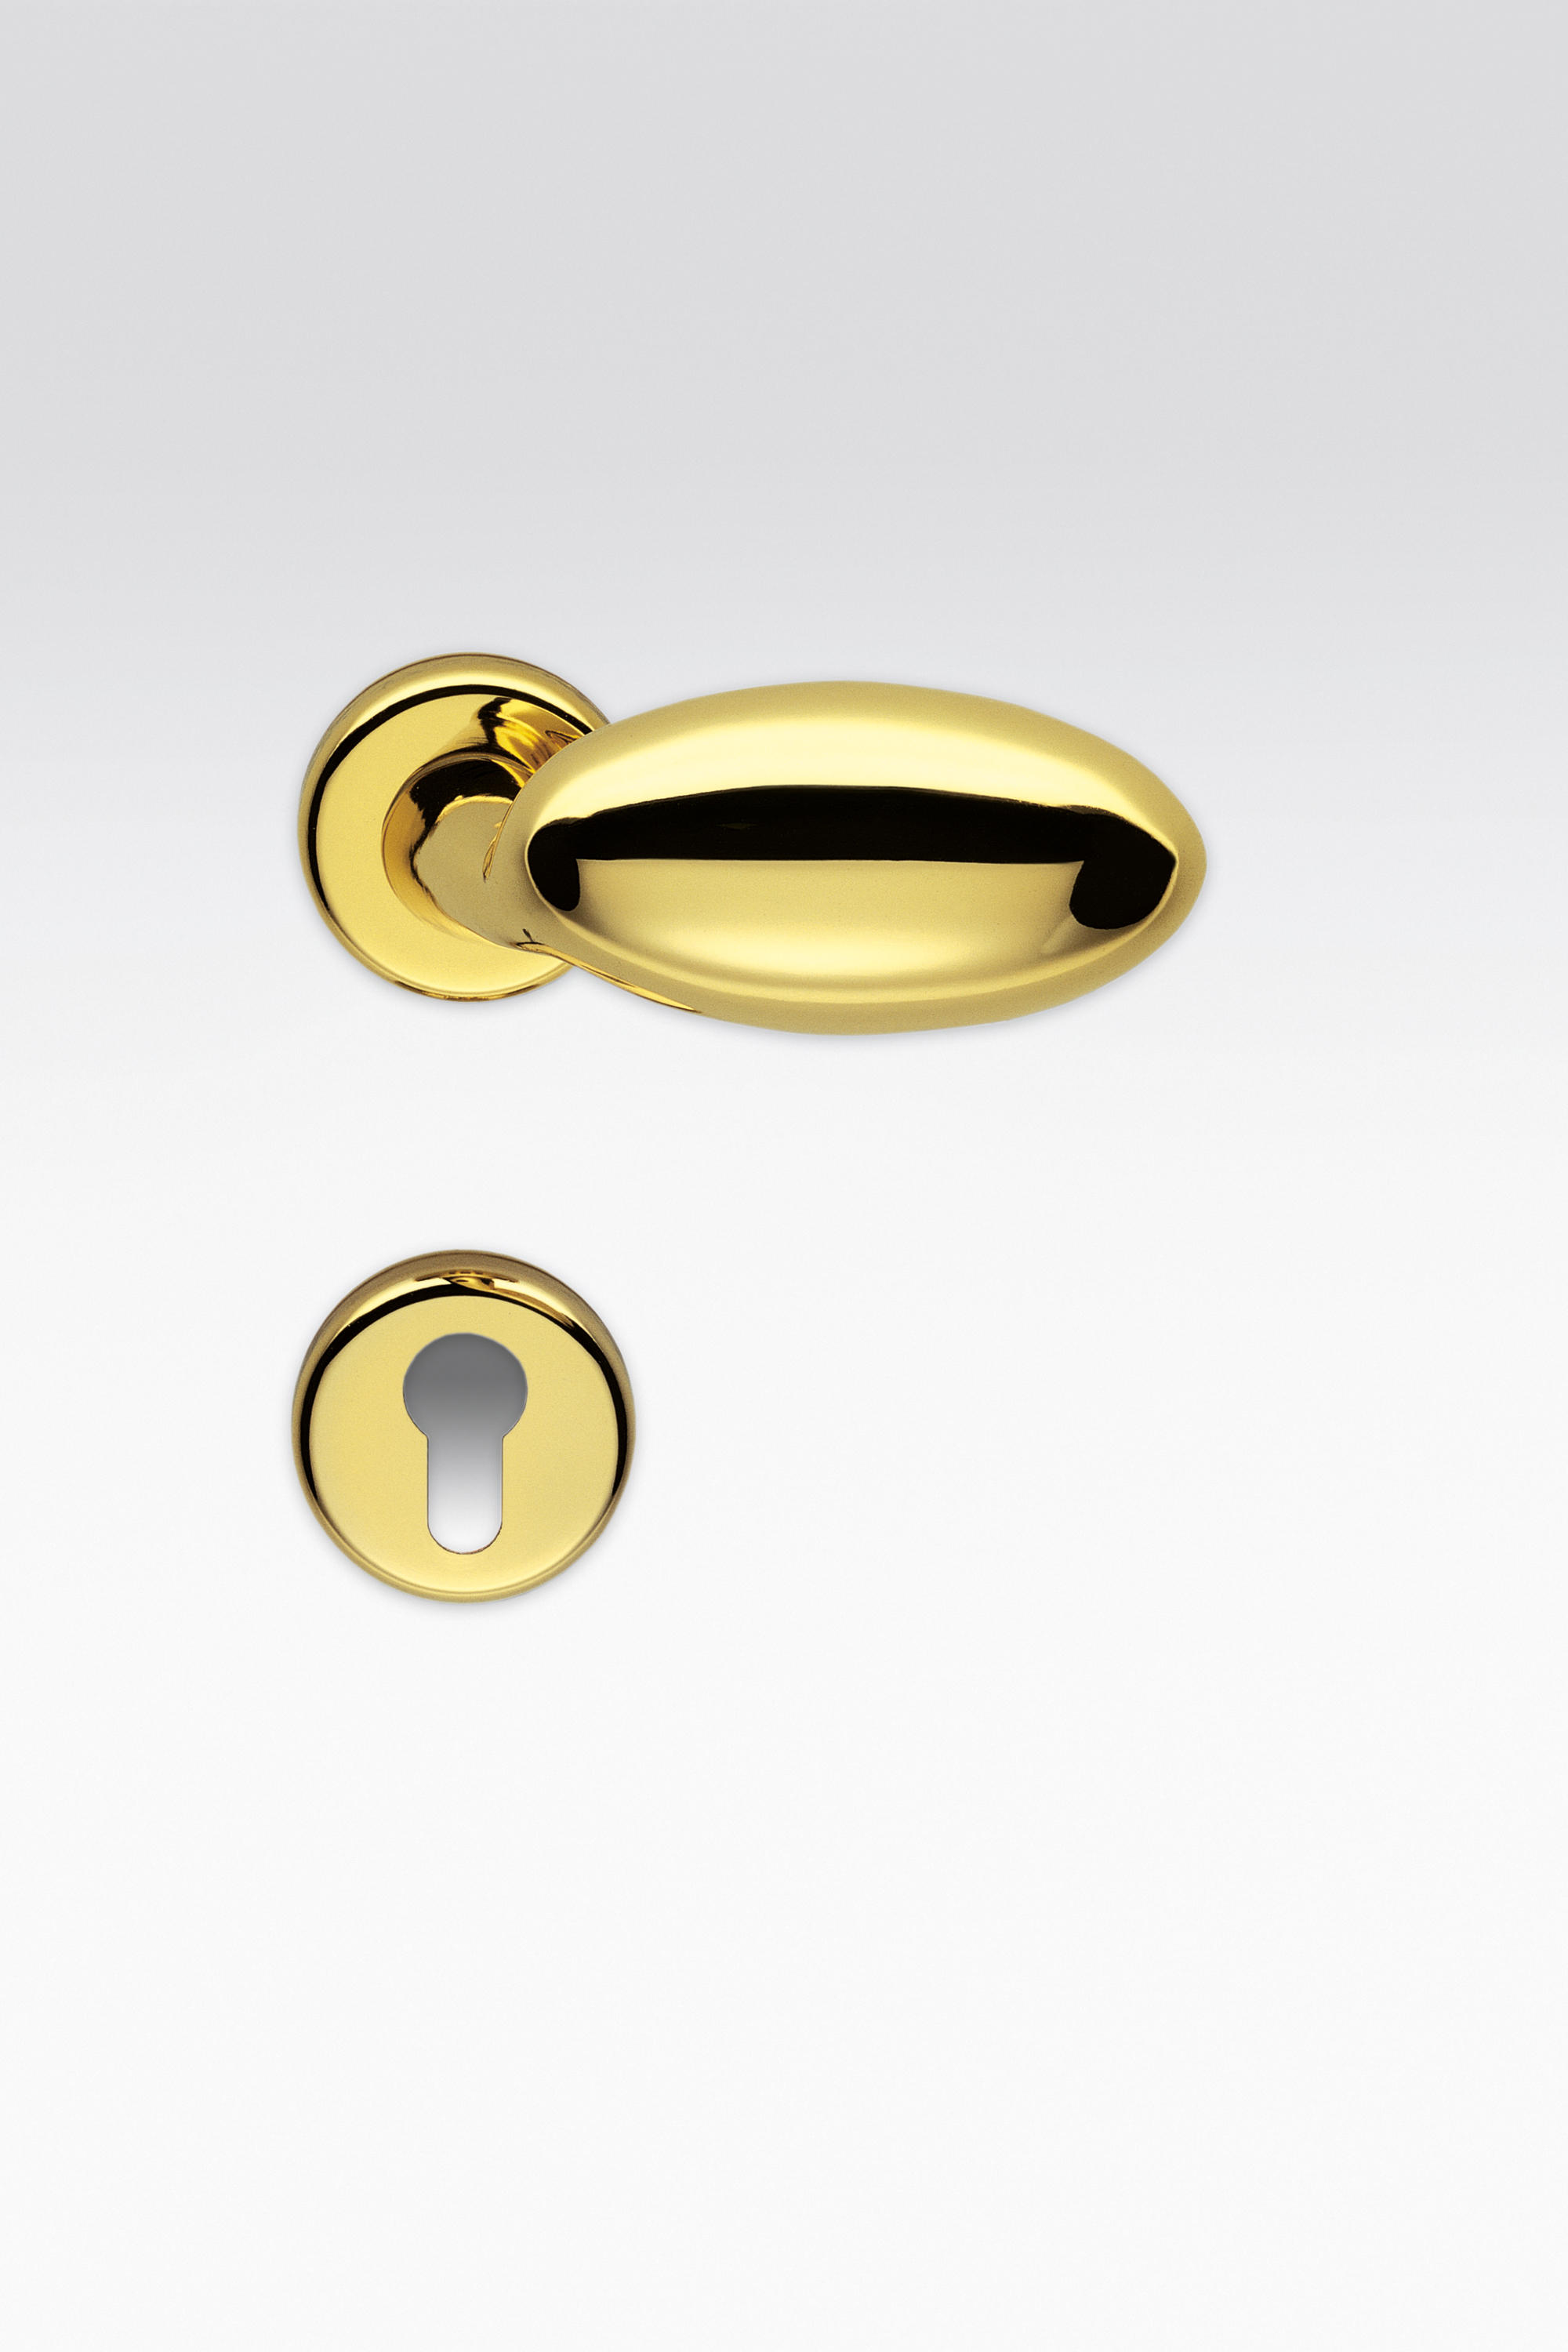 Robot knobs from colombo design architonic for Robot colombo